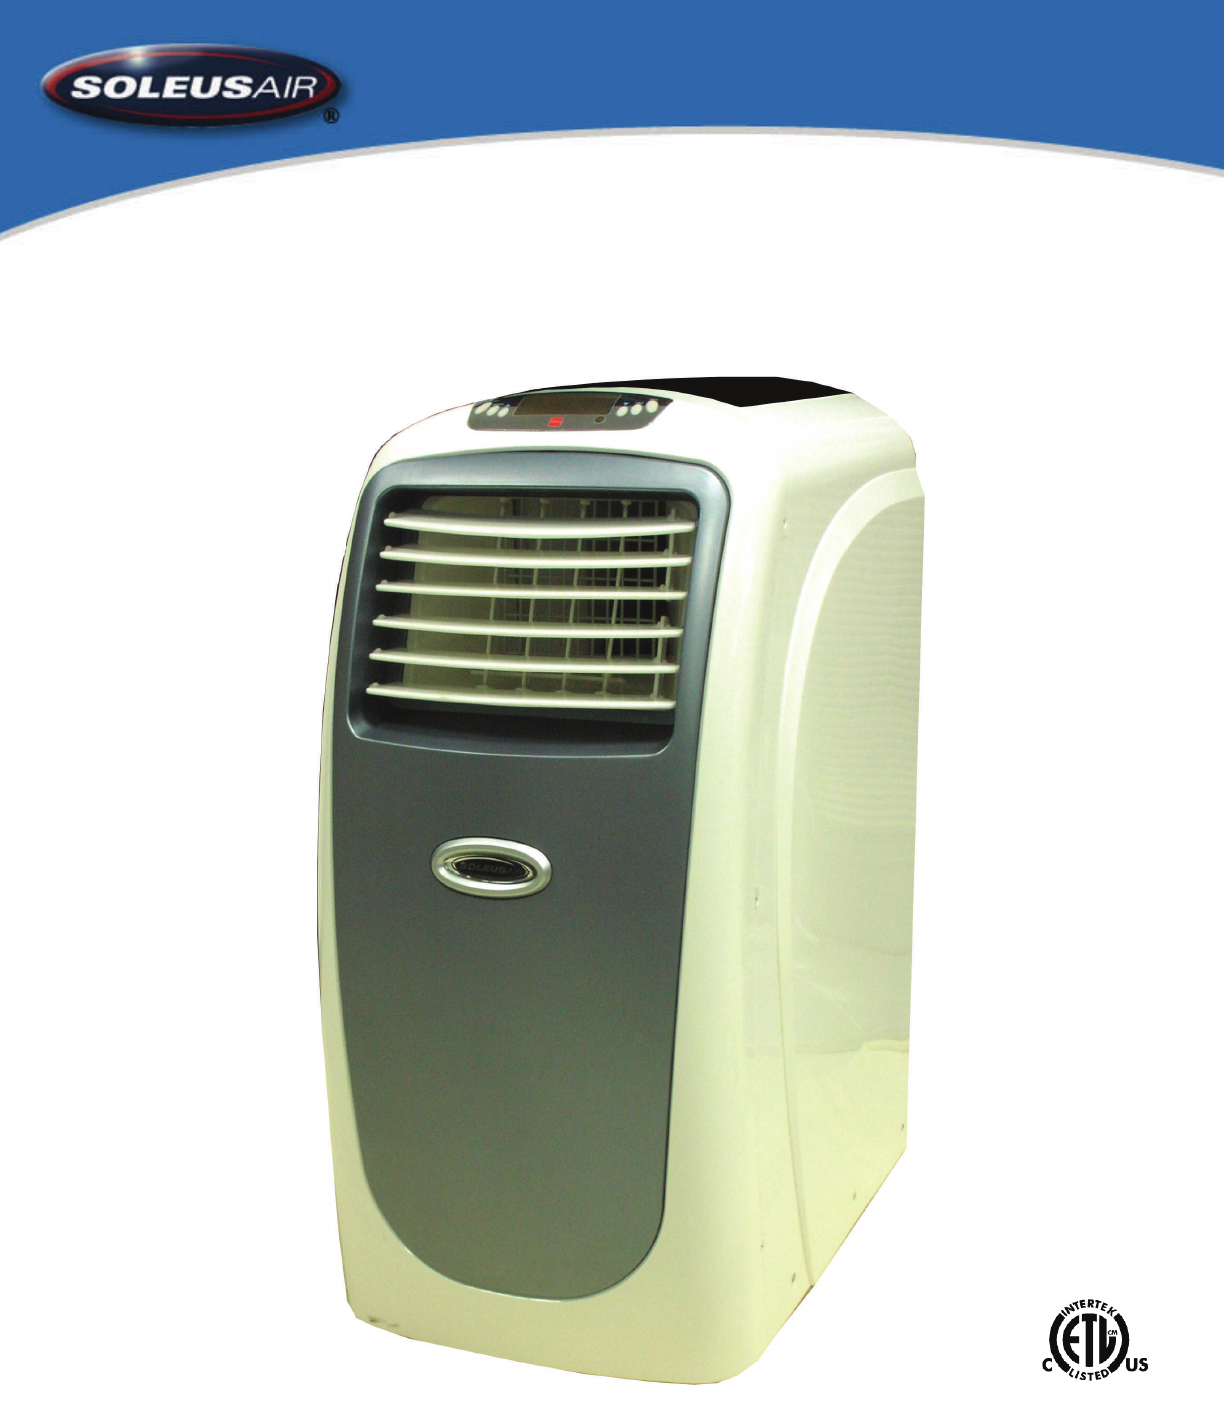 2008 Soleus Air International. 8000 / 10,000 BTU Portable Air Conditioner